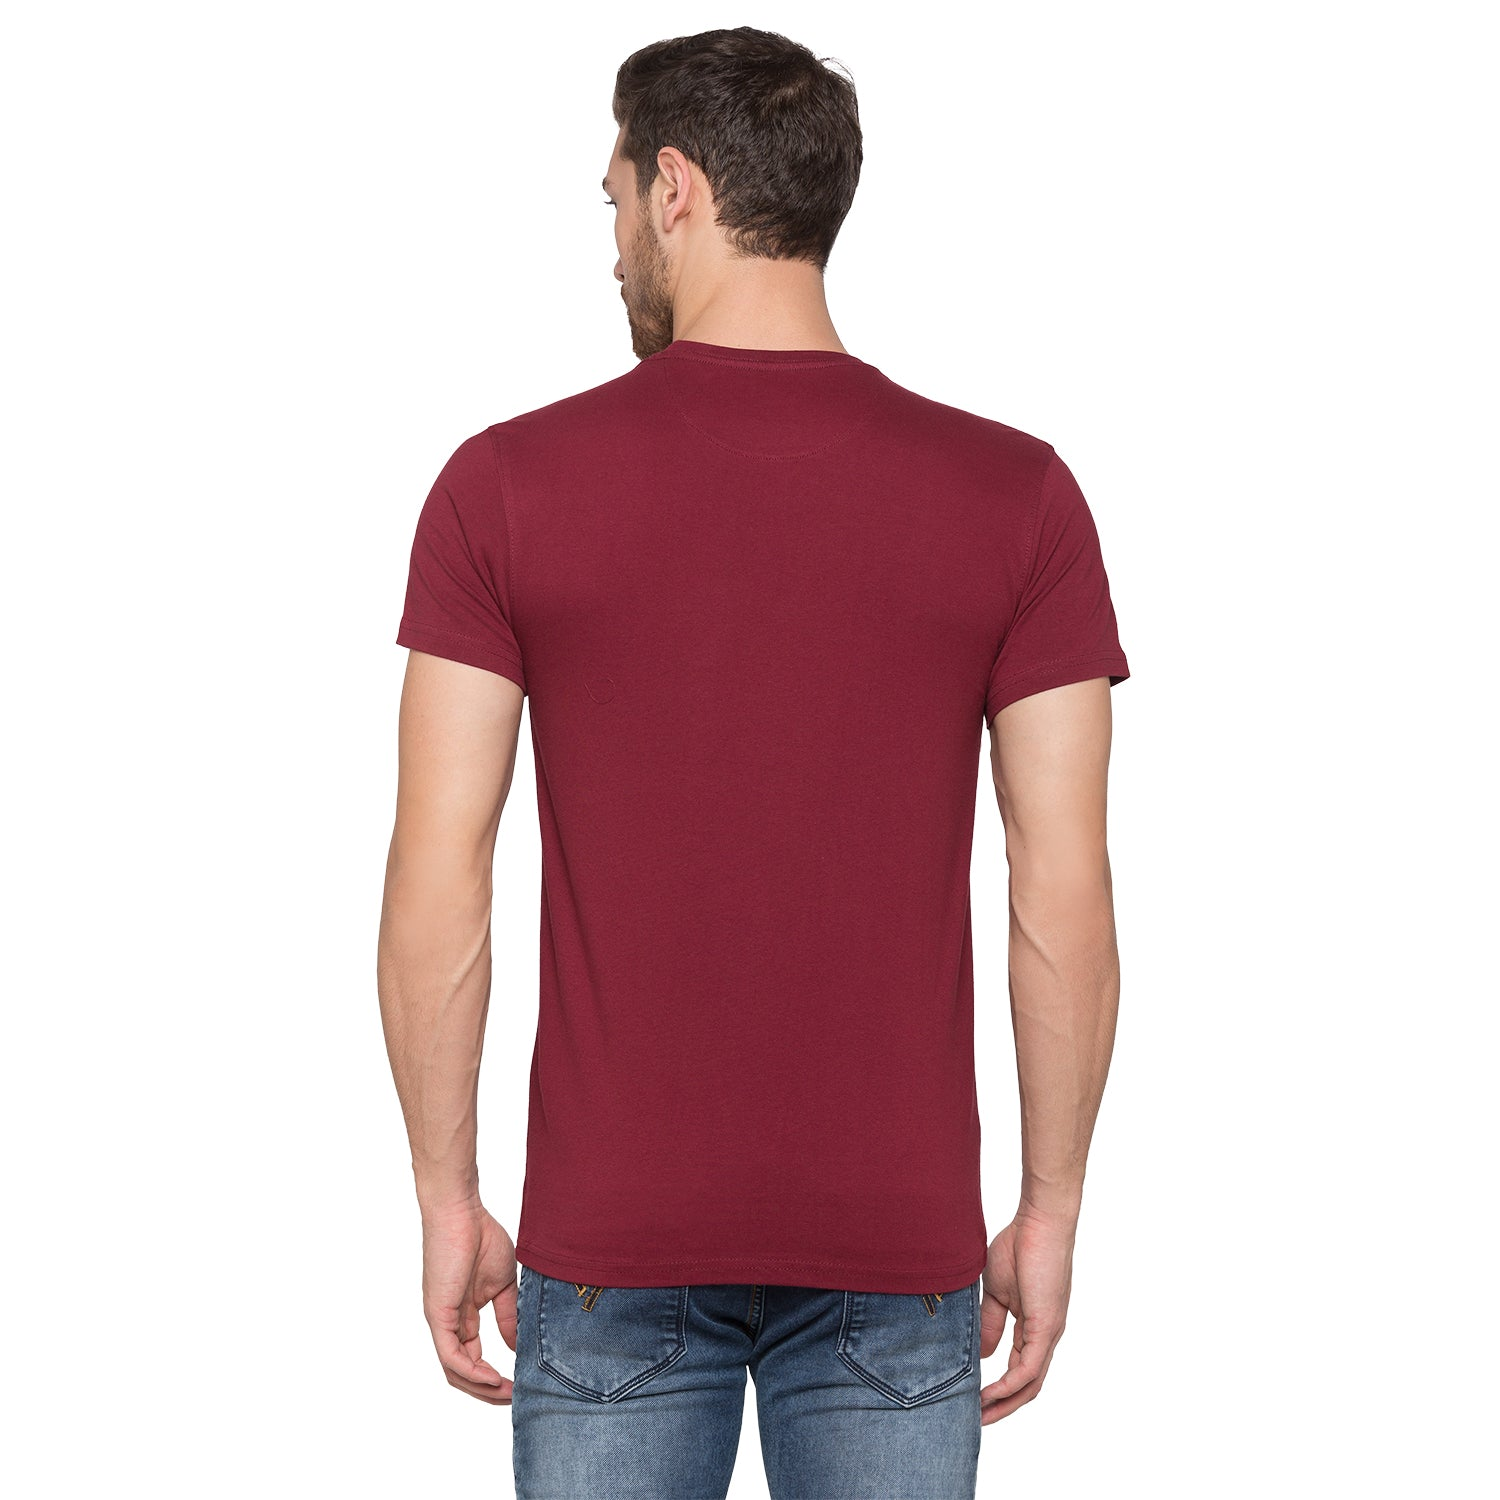 Globus Maroon Graphic T-Shirt3